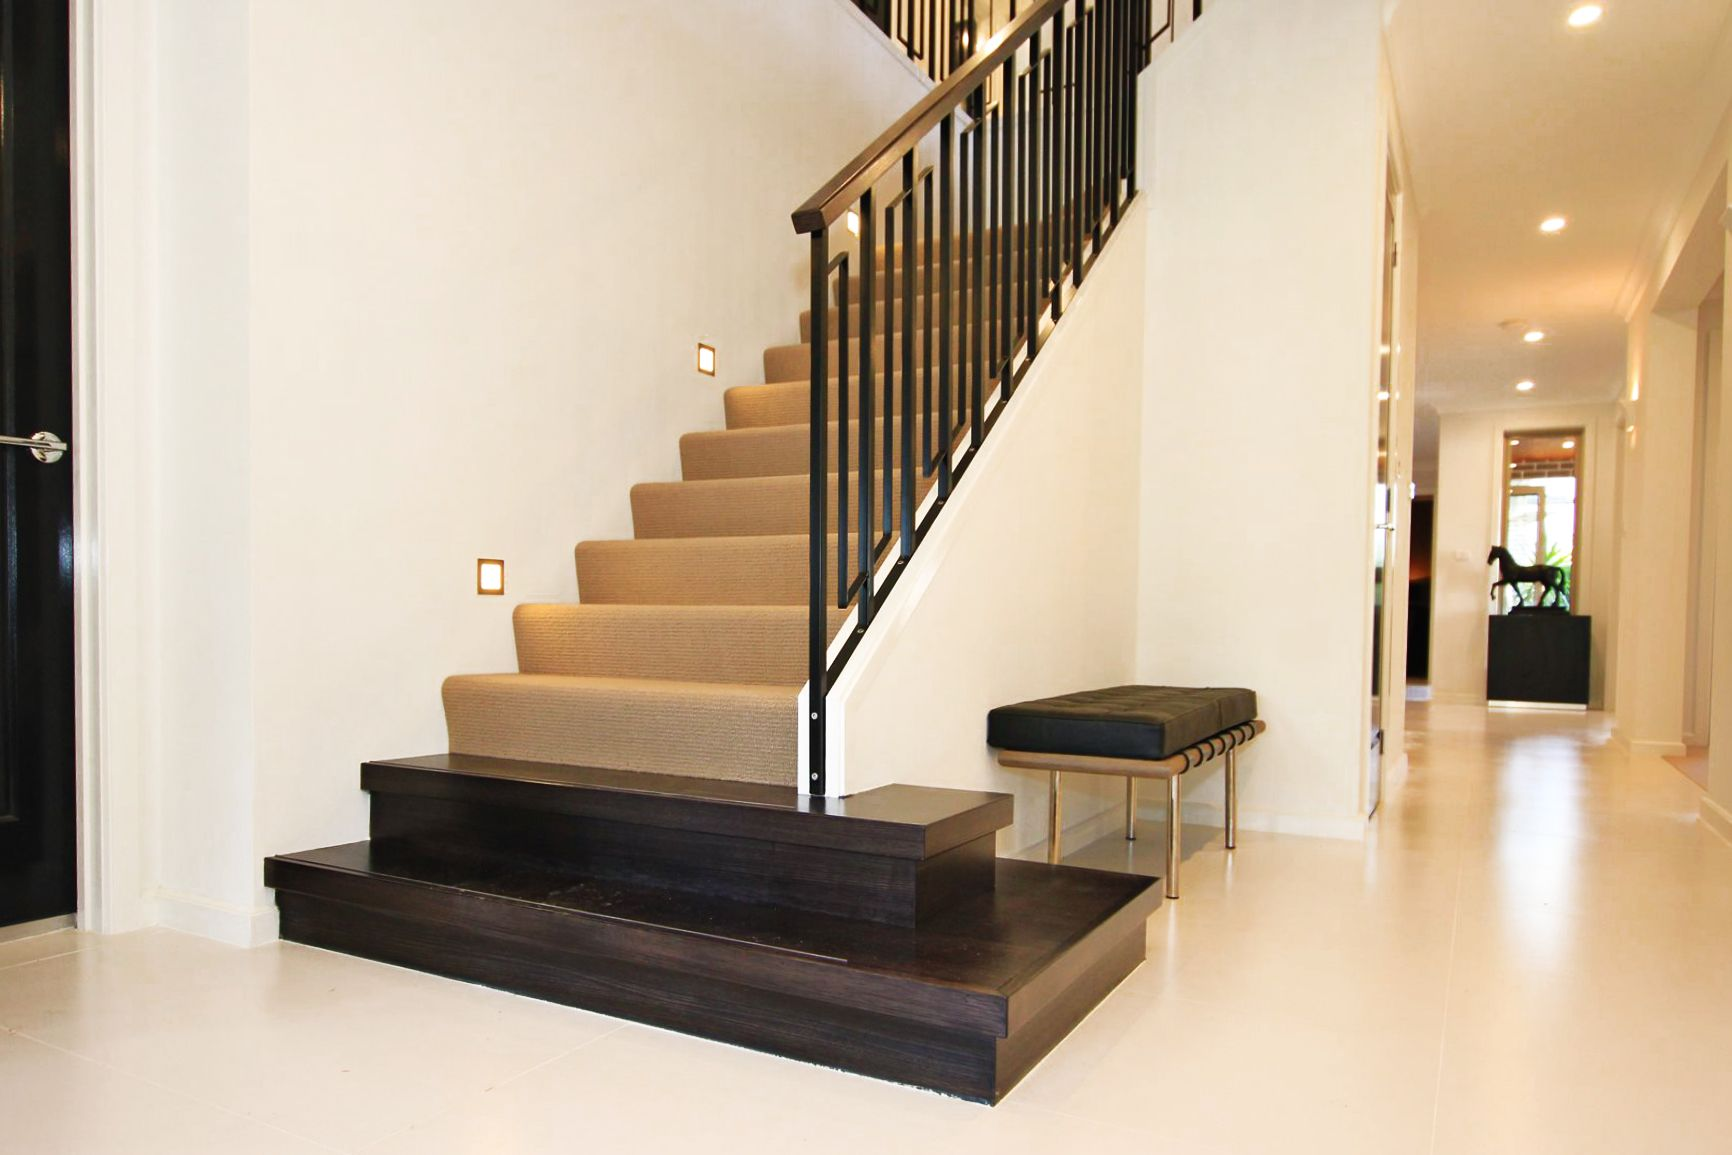 Carpeted Staircase With A Timber Feature Bullnose Wrought Iron Balusters With Timber Handrail Made By Genneral Timber Stair Carpet Staircase Timber Handrail